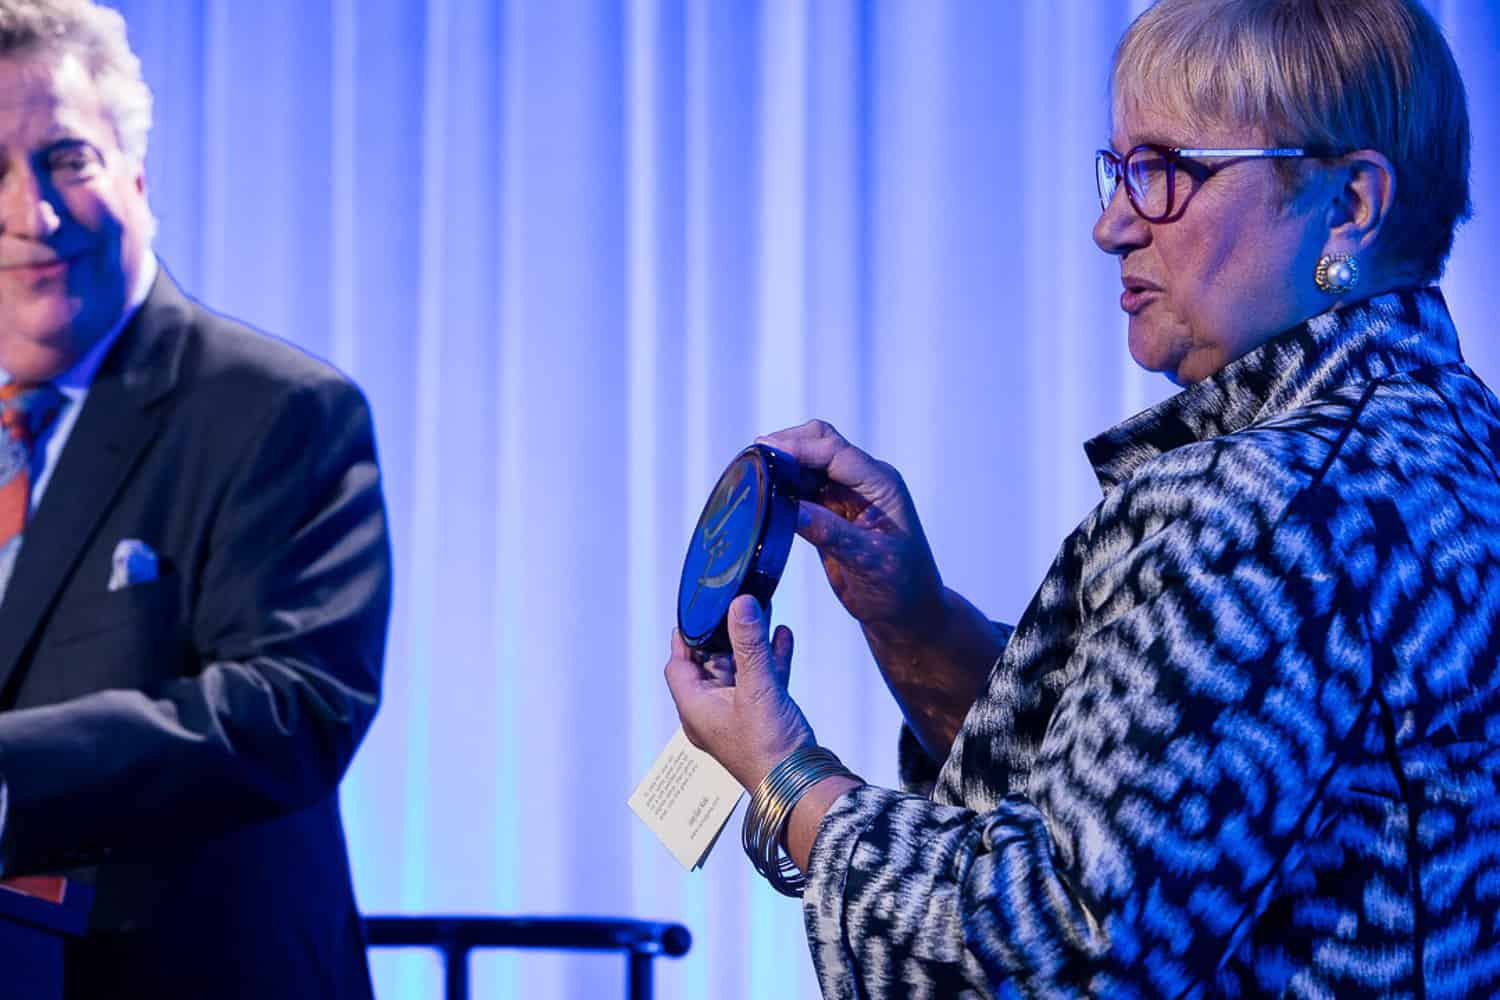 Photo of lidia bastianich accepting an award at wxxi event.